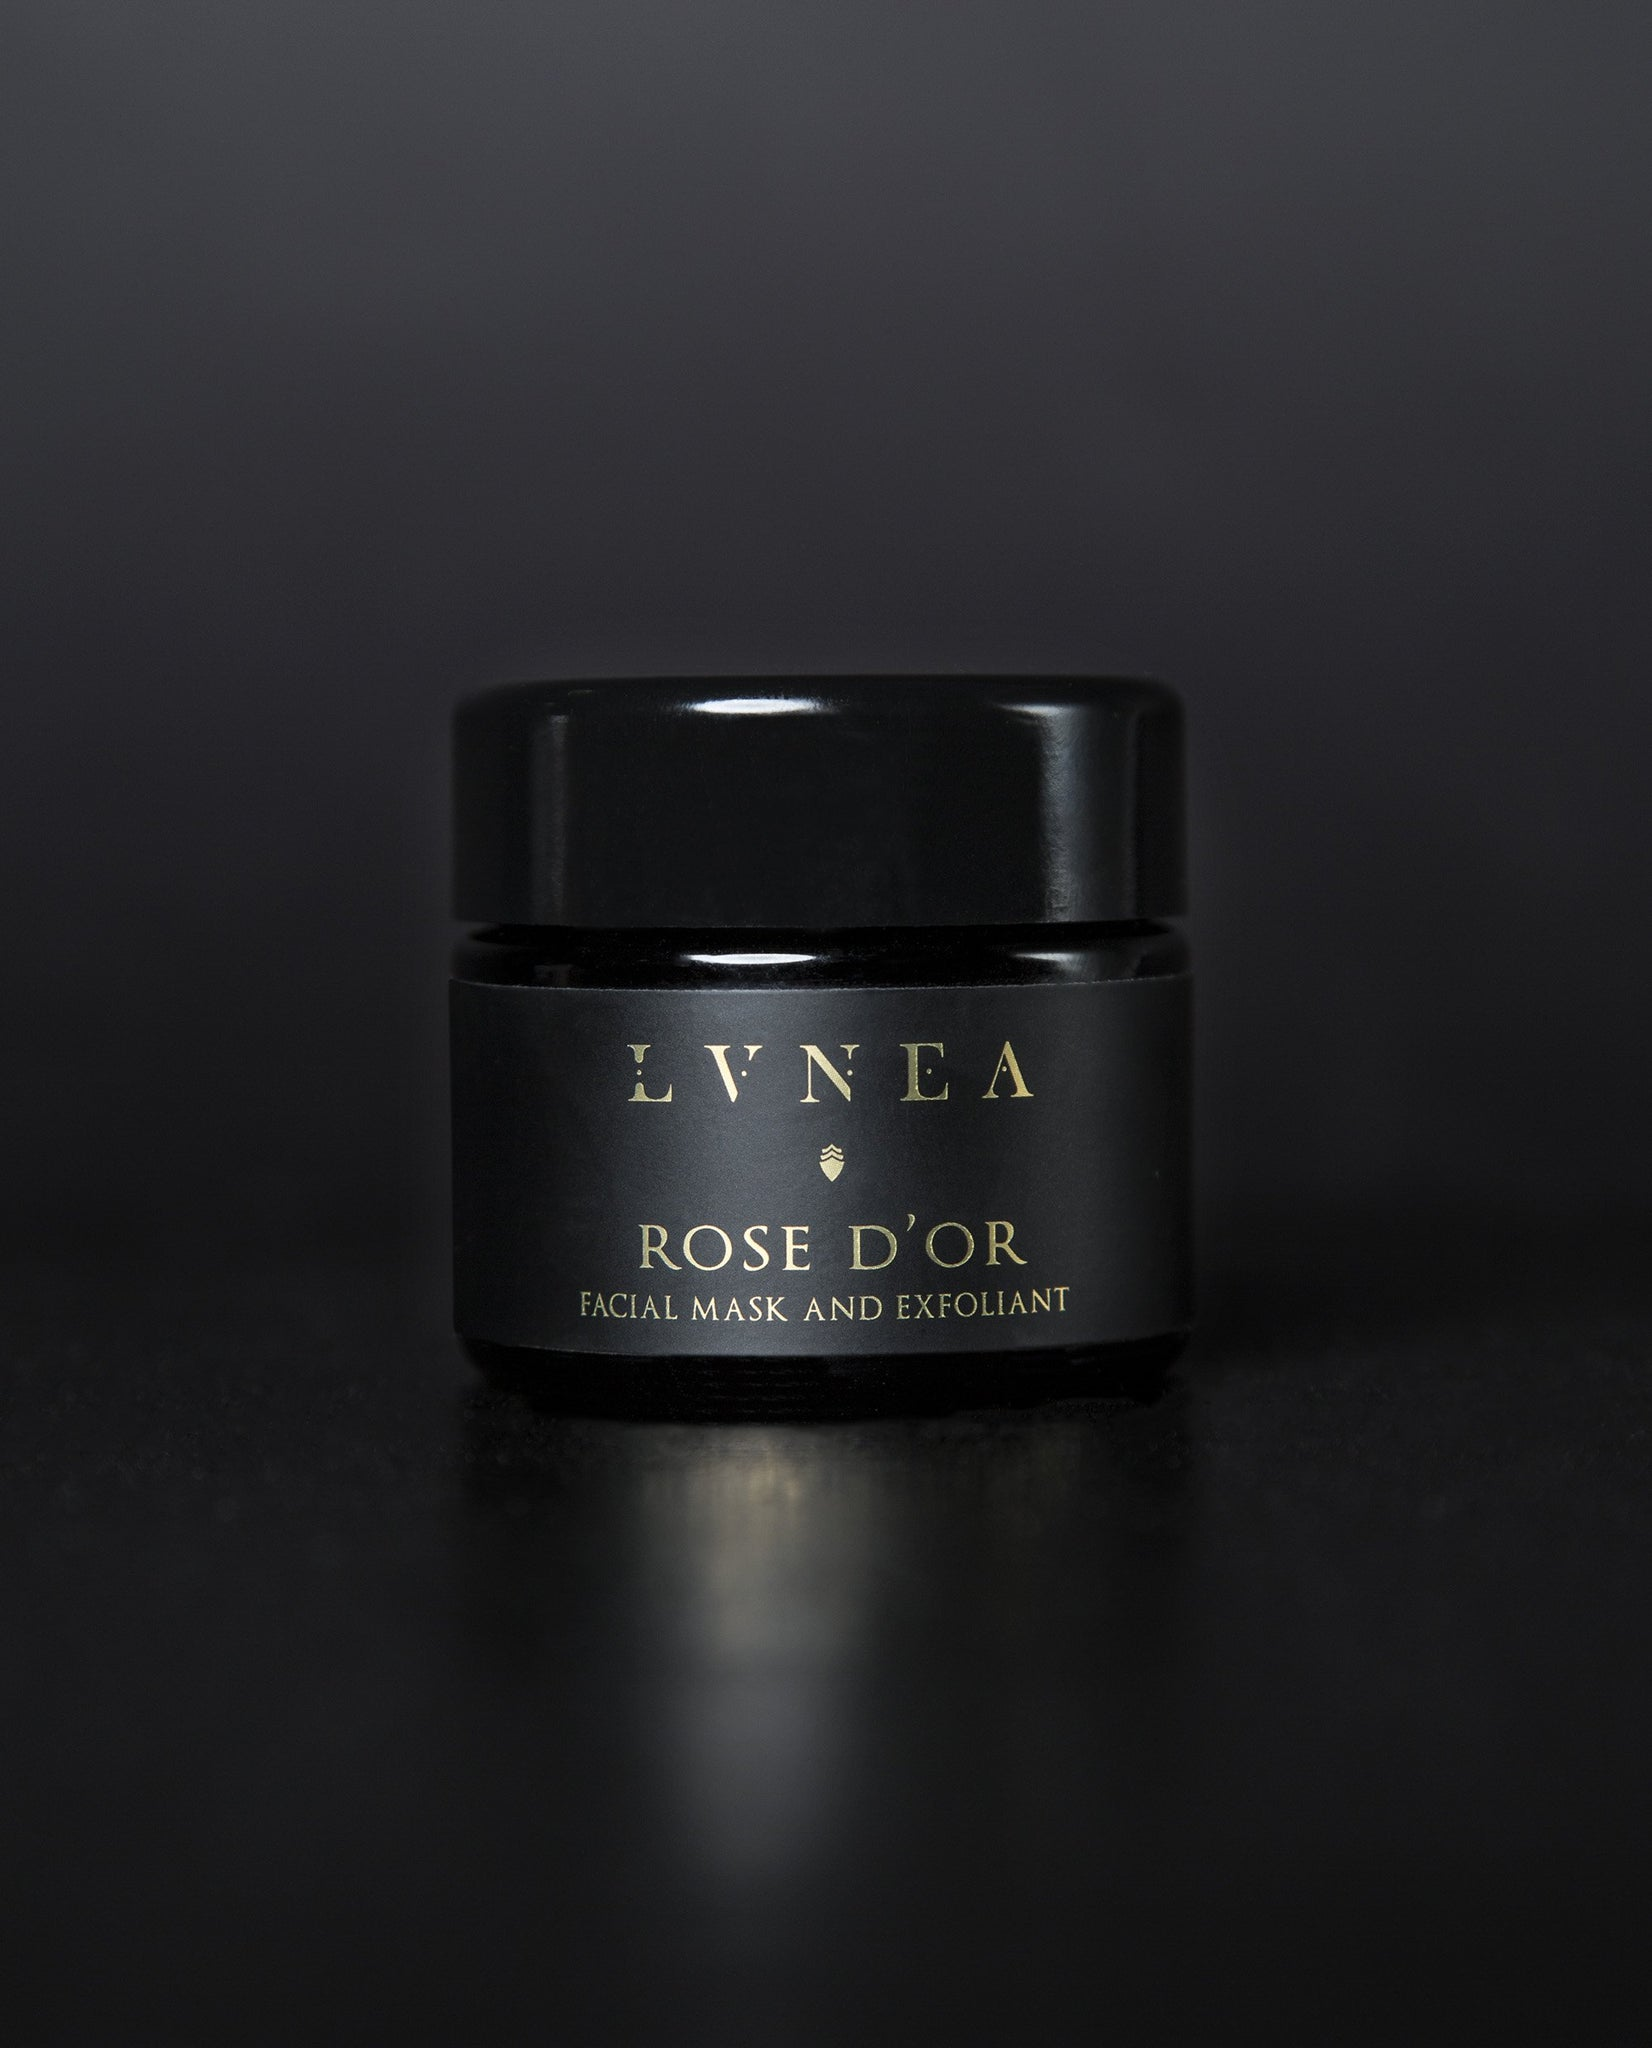 Masque exfoliant | Rose d'or